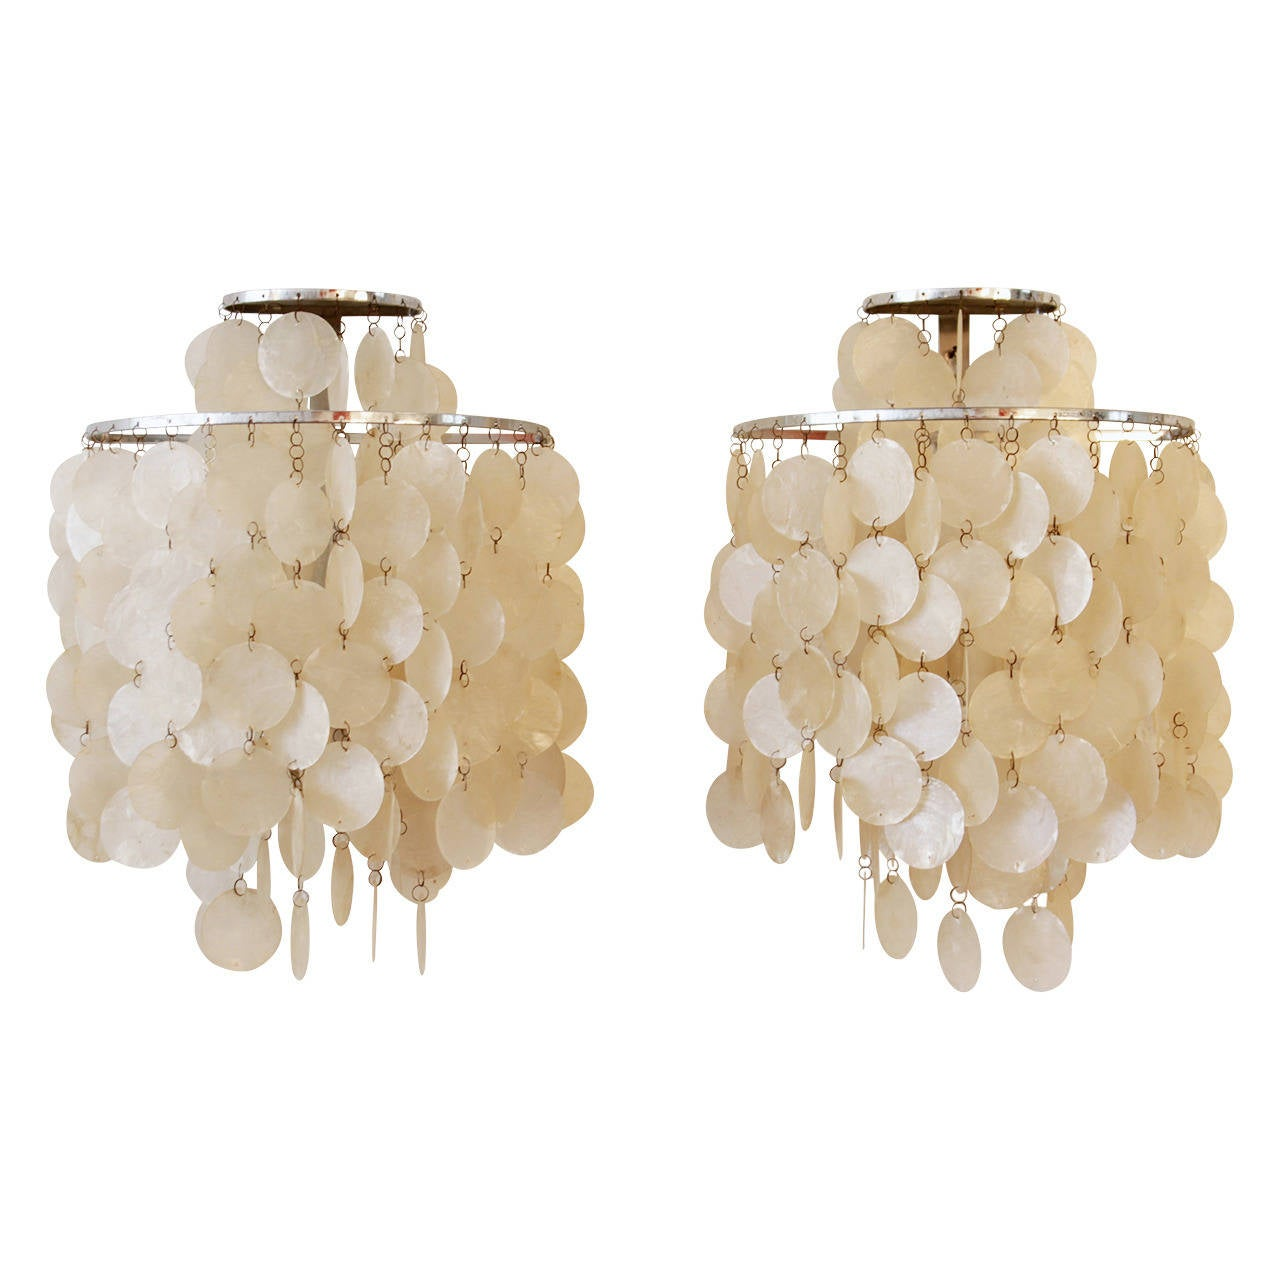 Verner panton pair of shell wall lamps by jlber for sale at 1stdibs verner panton pair of shell wall lamps by jlber for sale mozeypictures